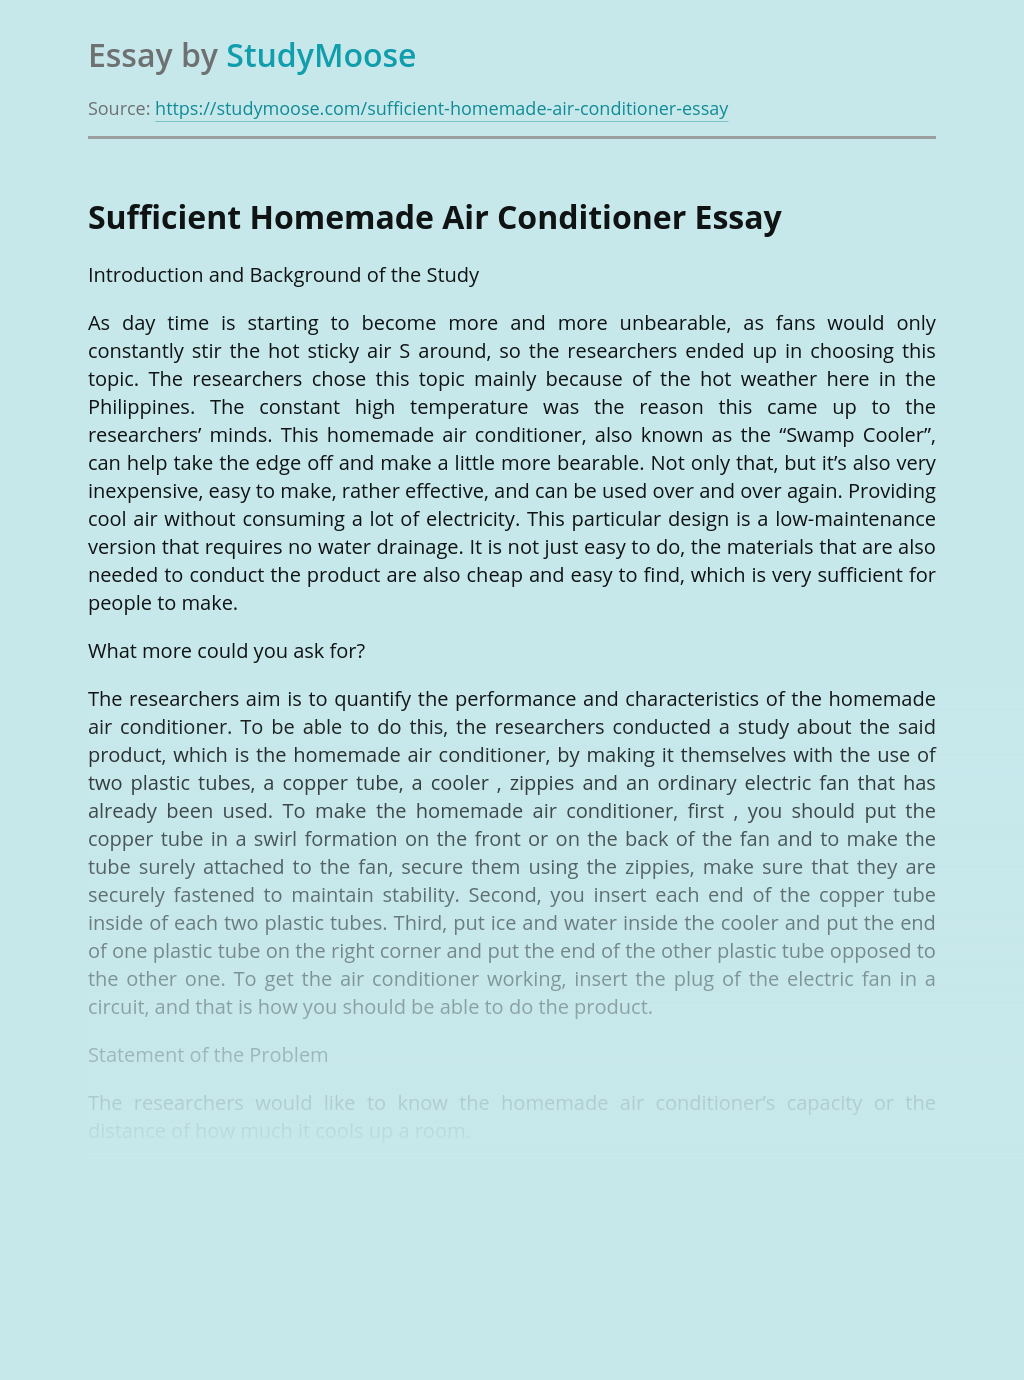 Sufficient Homemade Air Conditioner